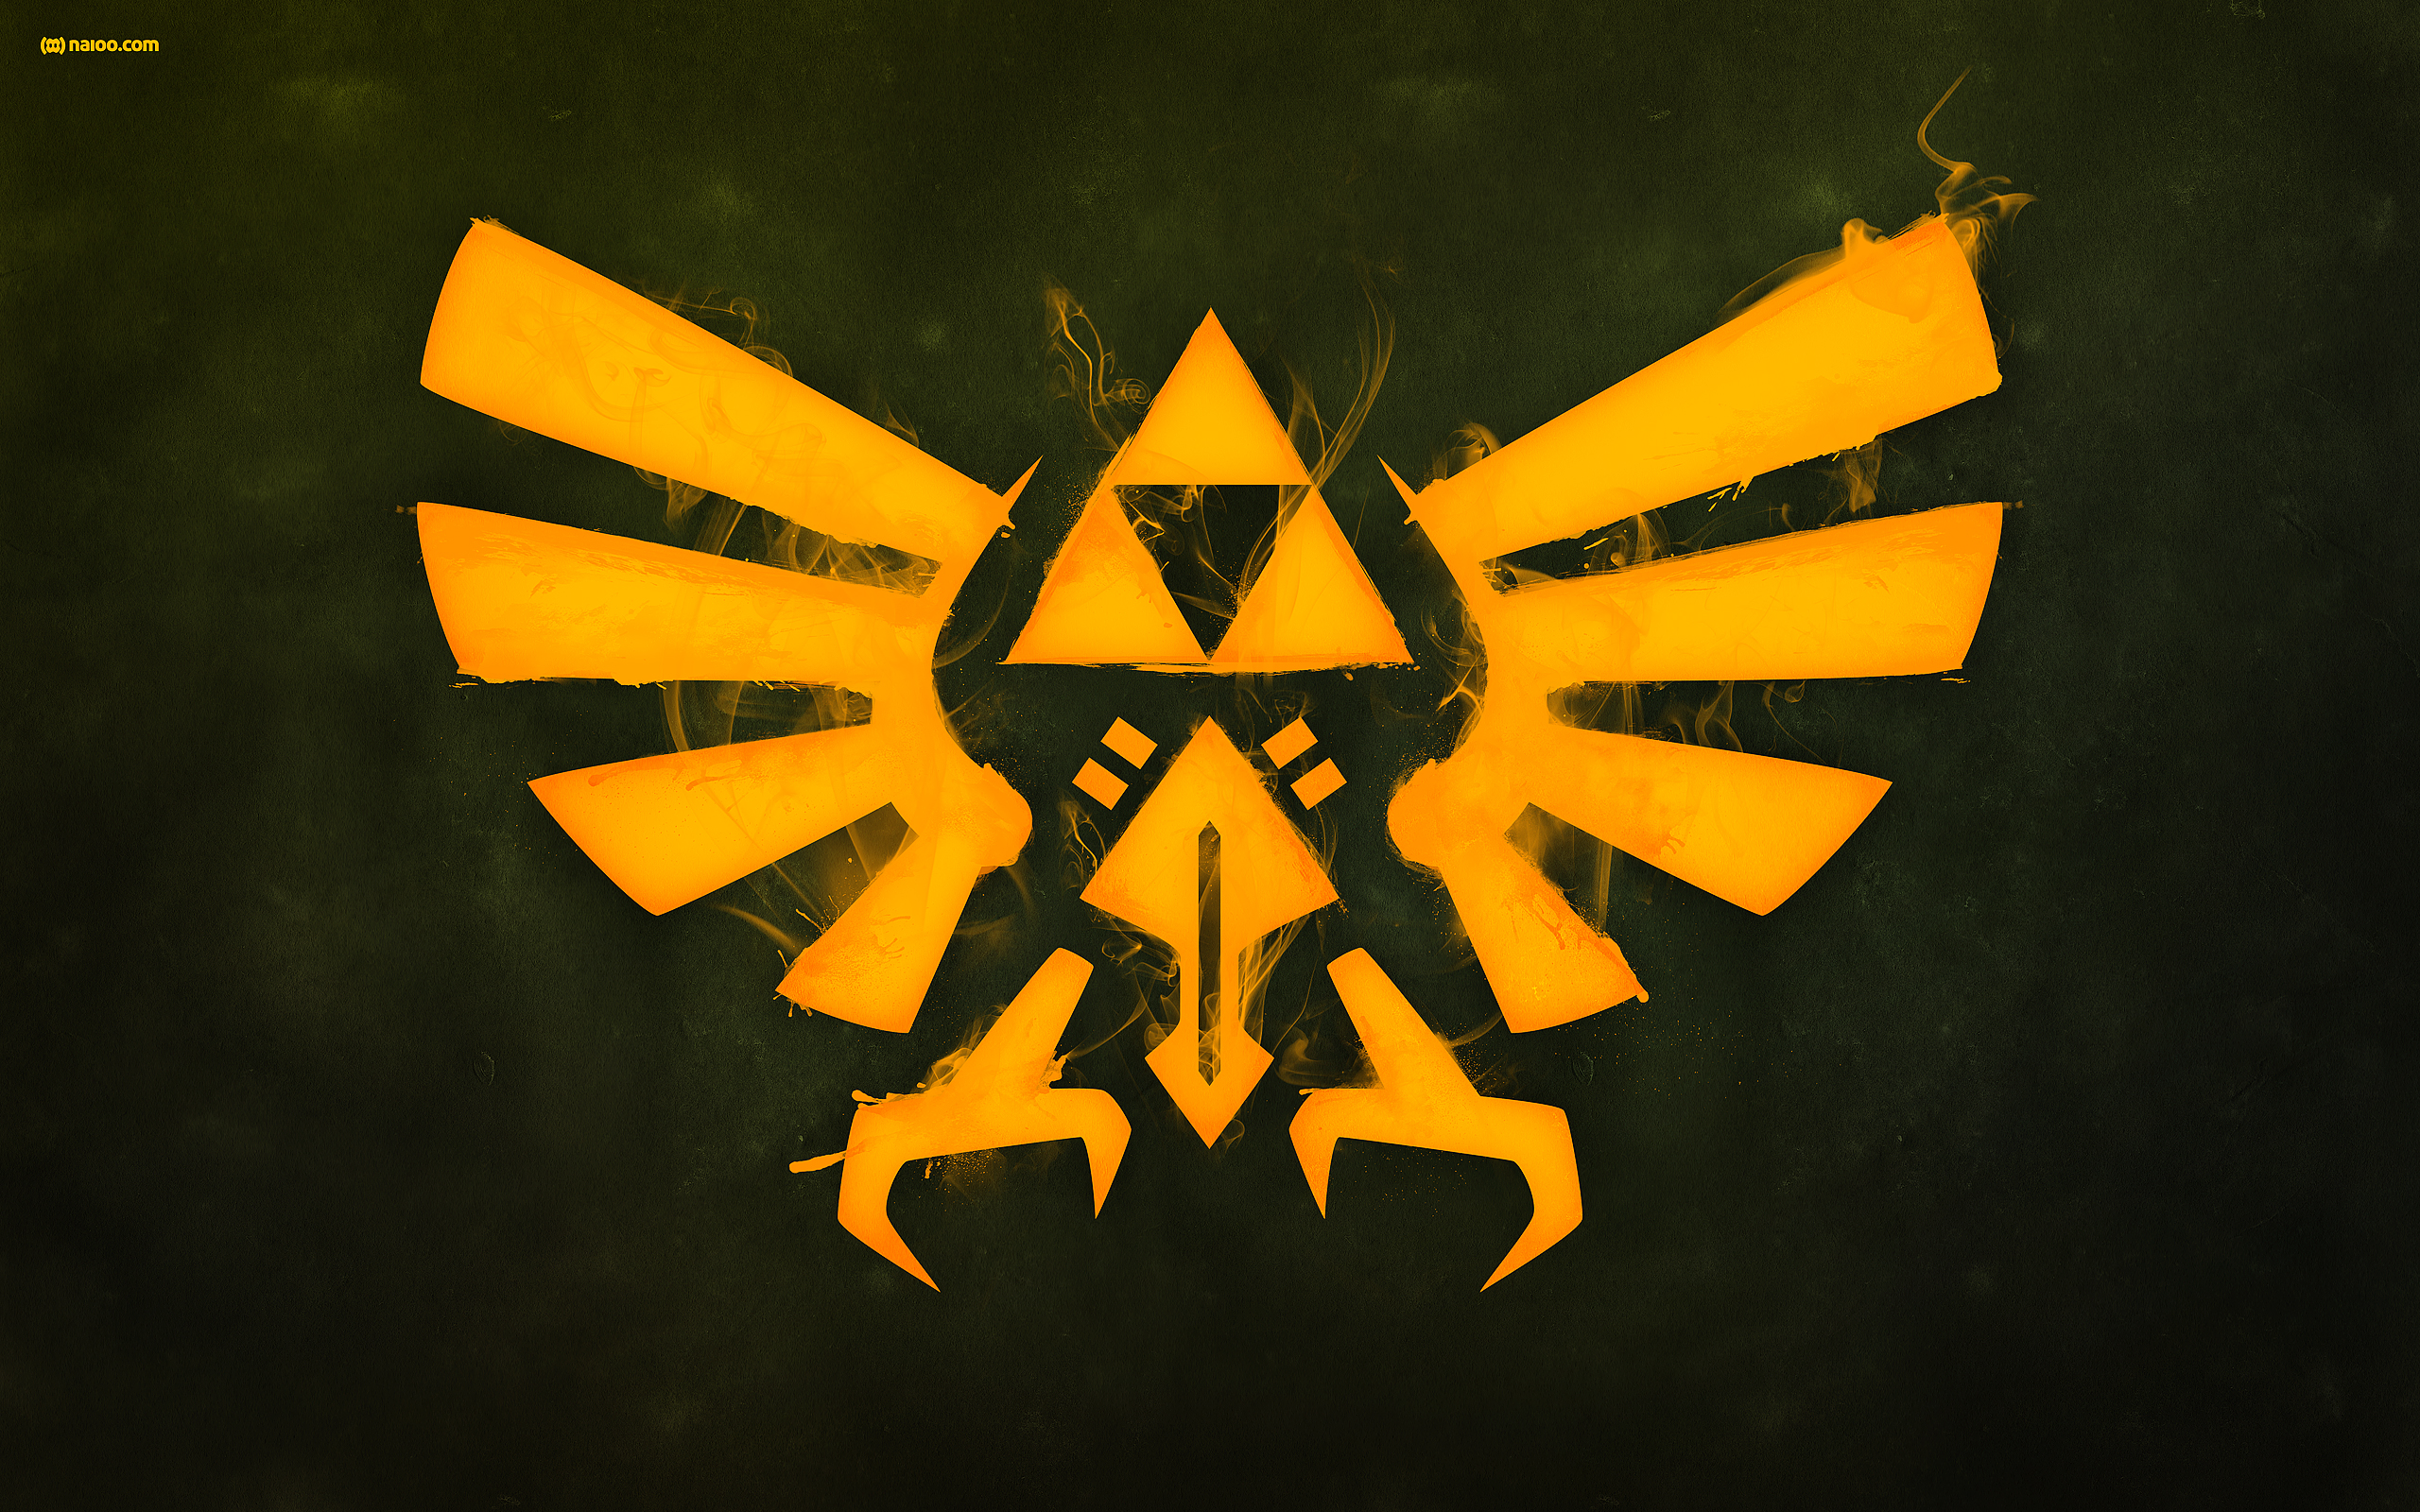 Eagle Wallpaper Iphone X Wallpaper Triforce Zelda Symbole Jeux Video Info